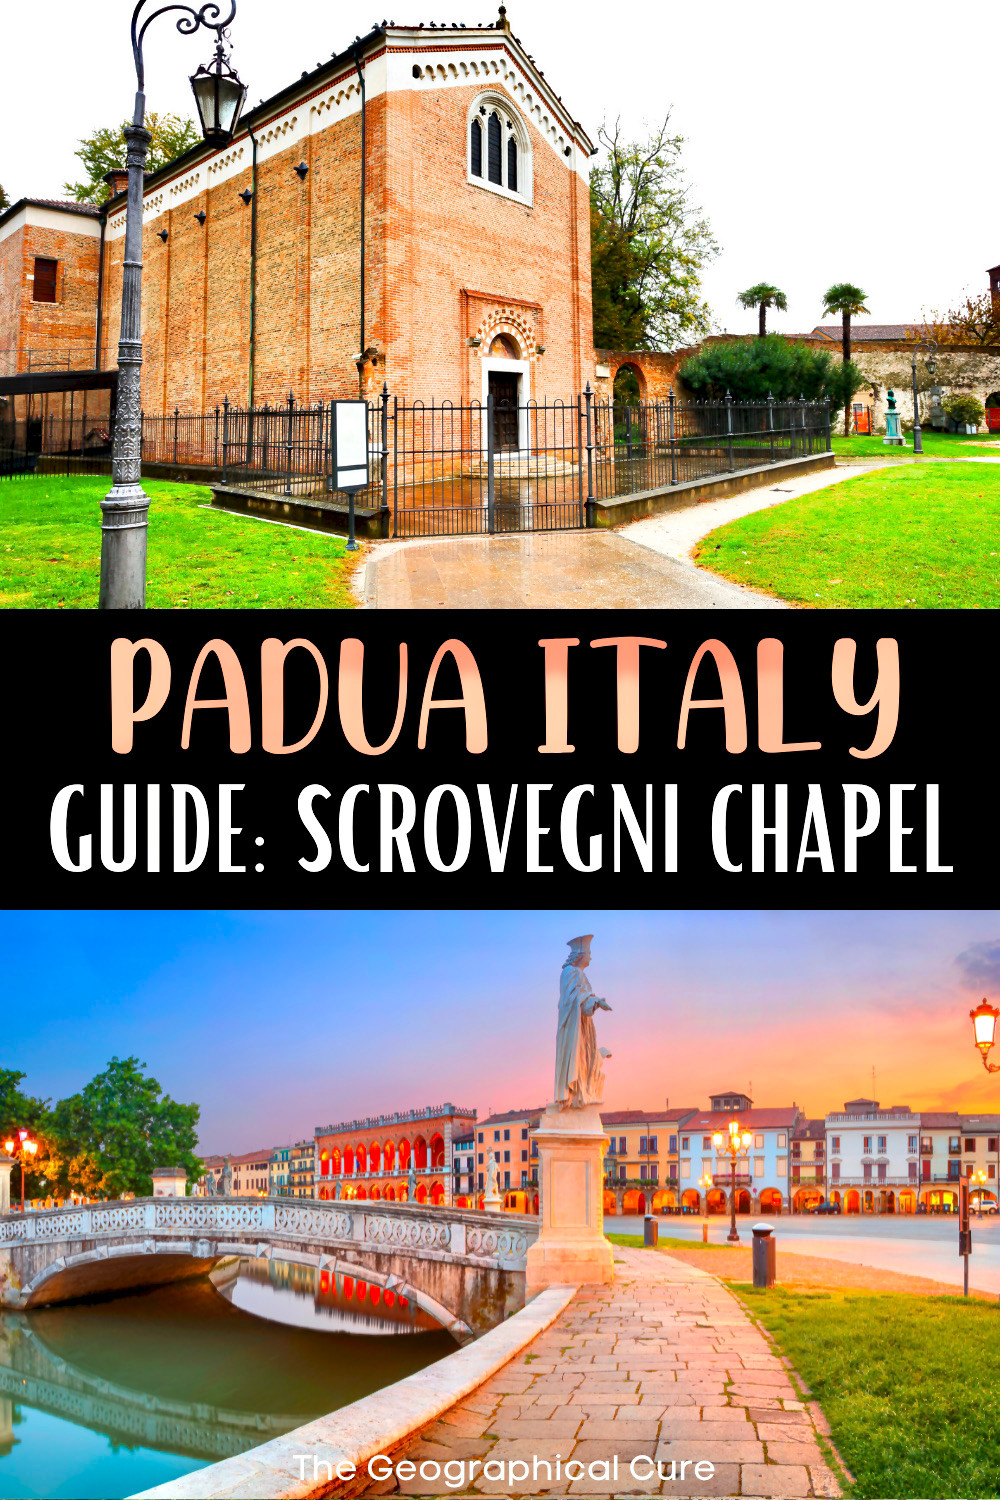 guide to the stunning Scrovegni Chapel in Padua Italy, with masterpieces by Giotto